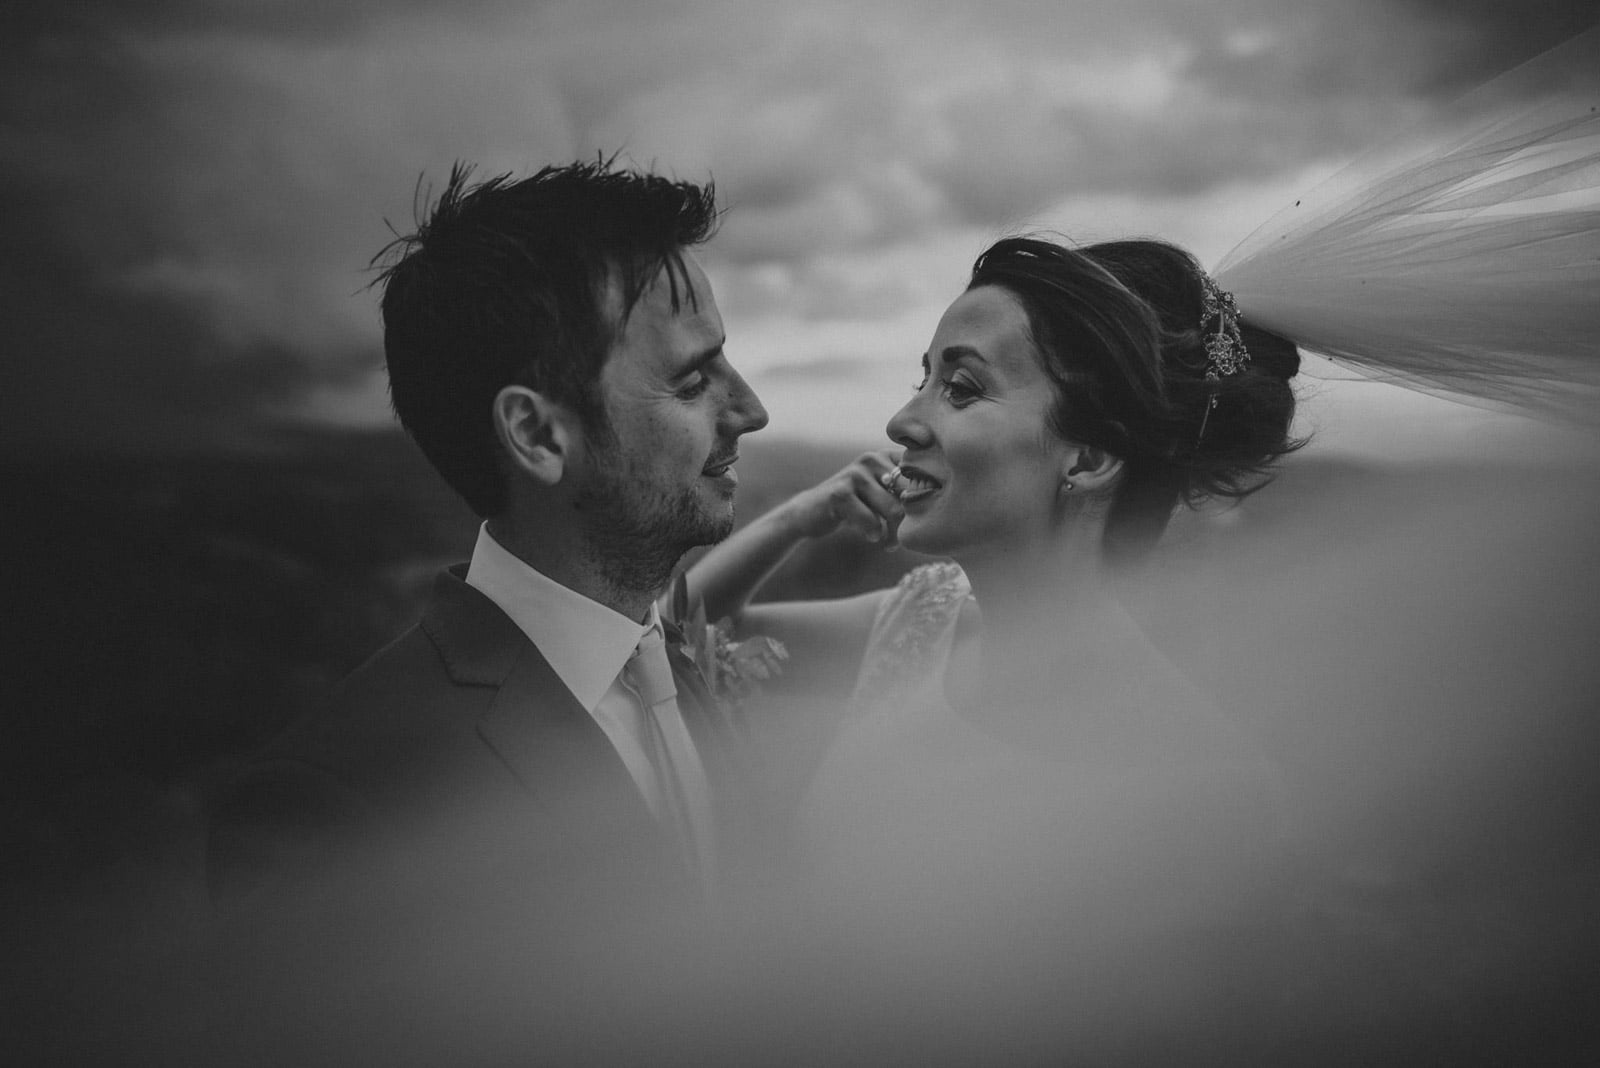 073-wedding-tuscany-san-galgano-federico-pannacci-photographer